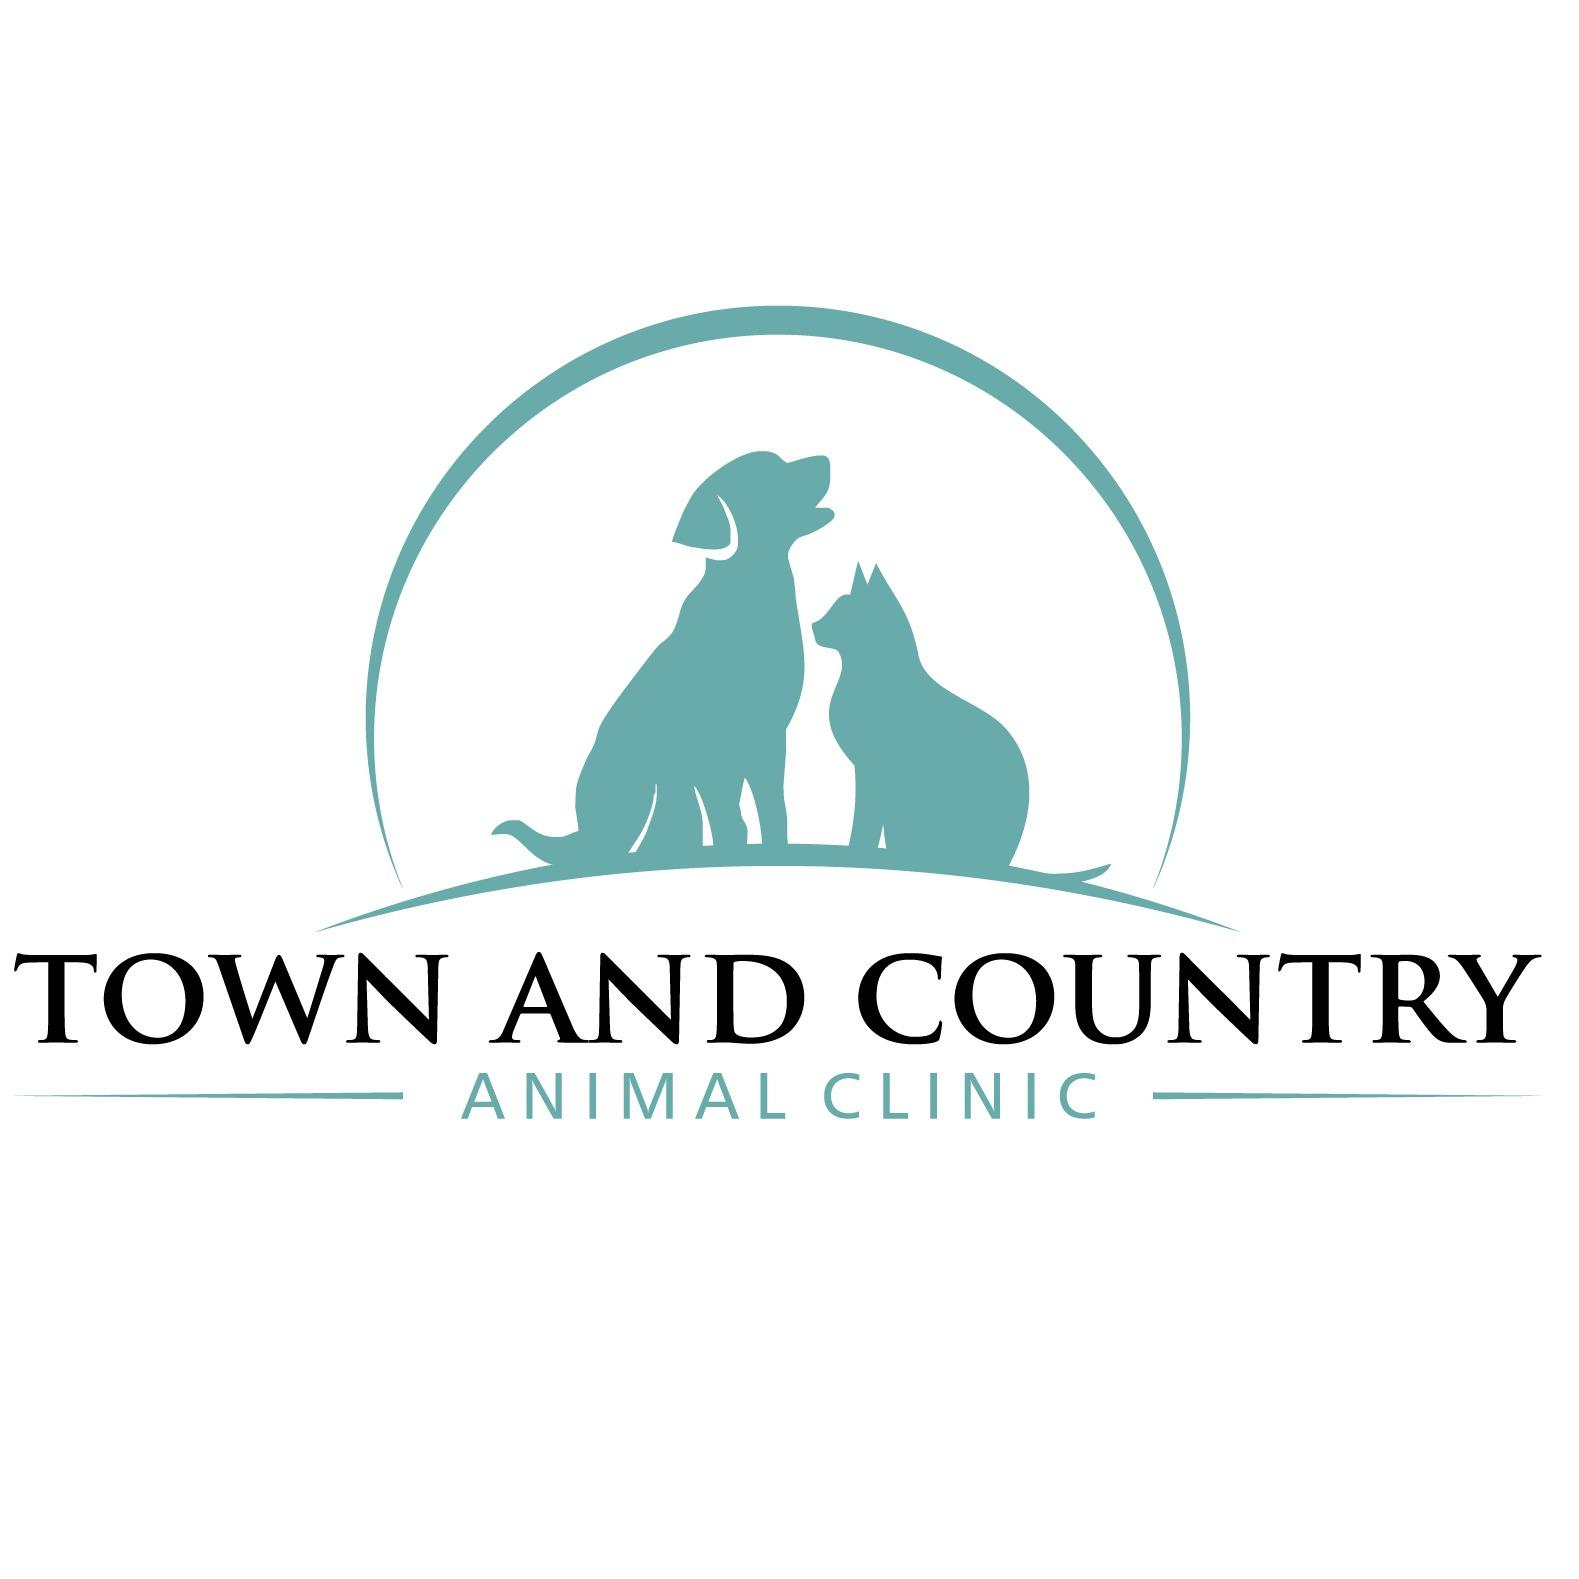 Town and Country Animal Clinic